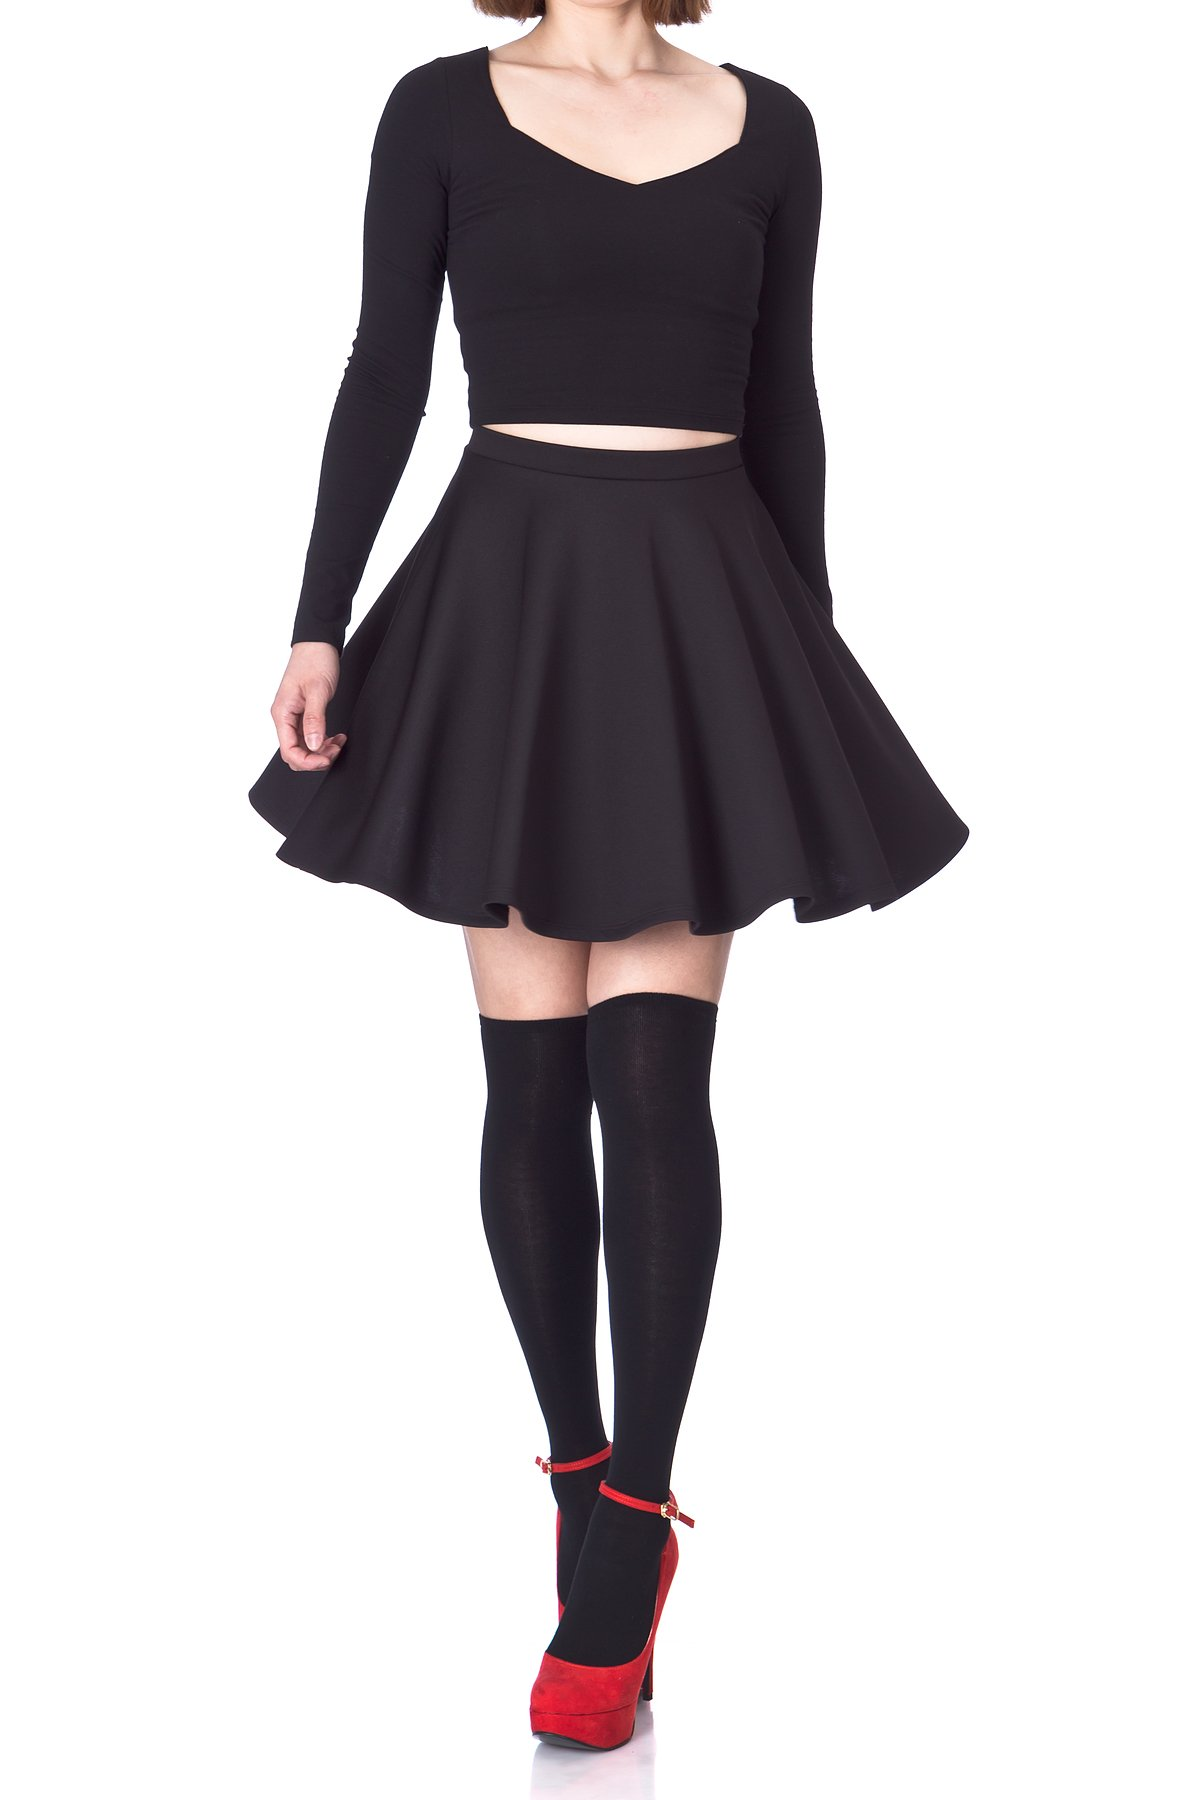 Flouncy High Waist A line Full Flared Circle Swing Dance Party Casual Skater Short Mini Skirt Black 01